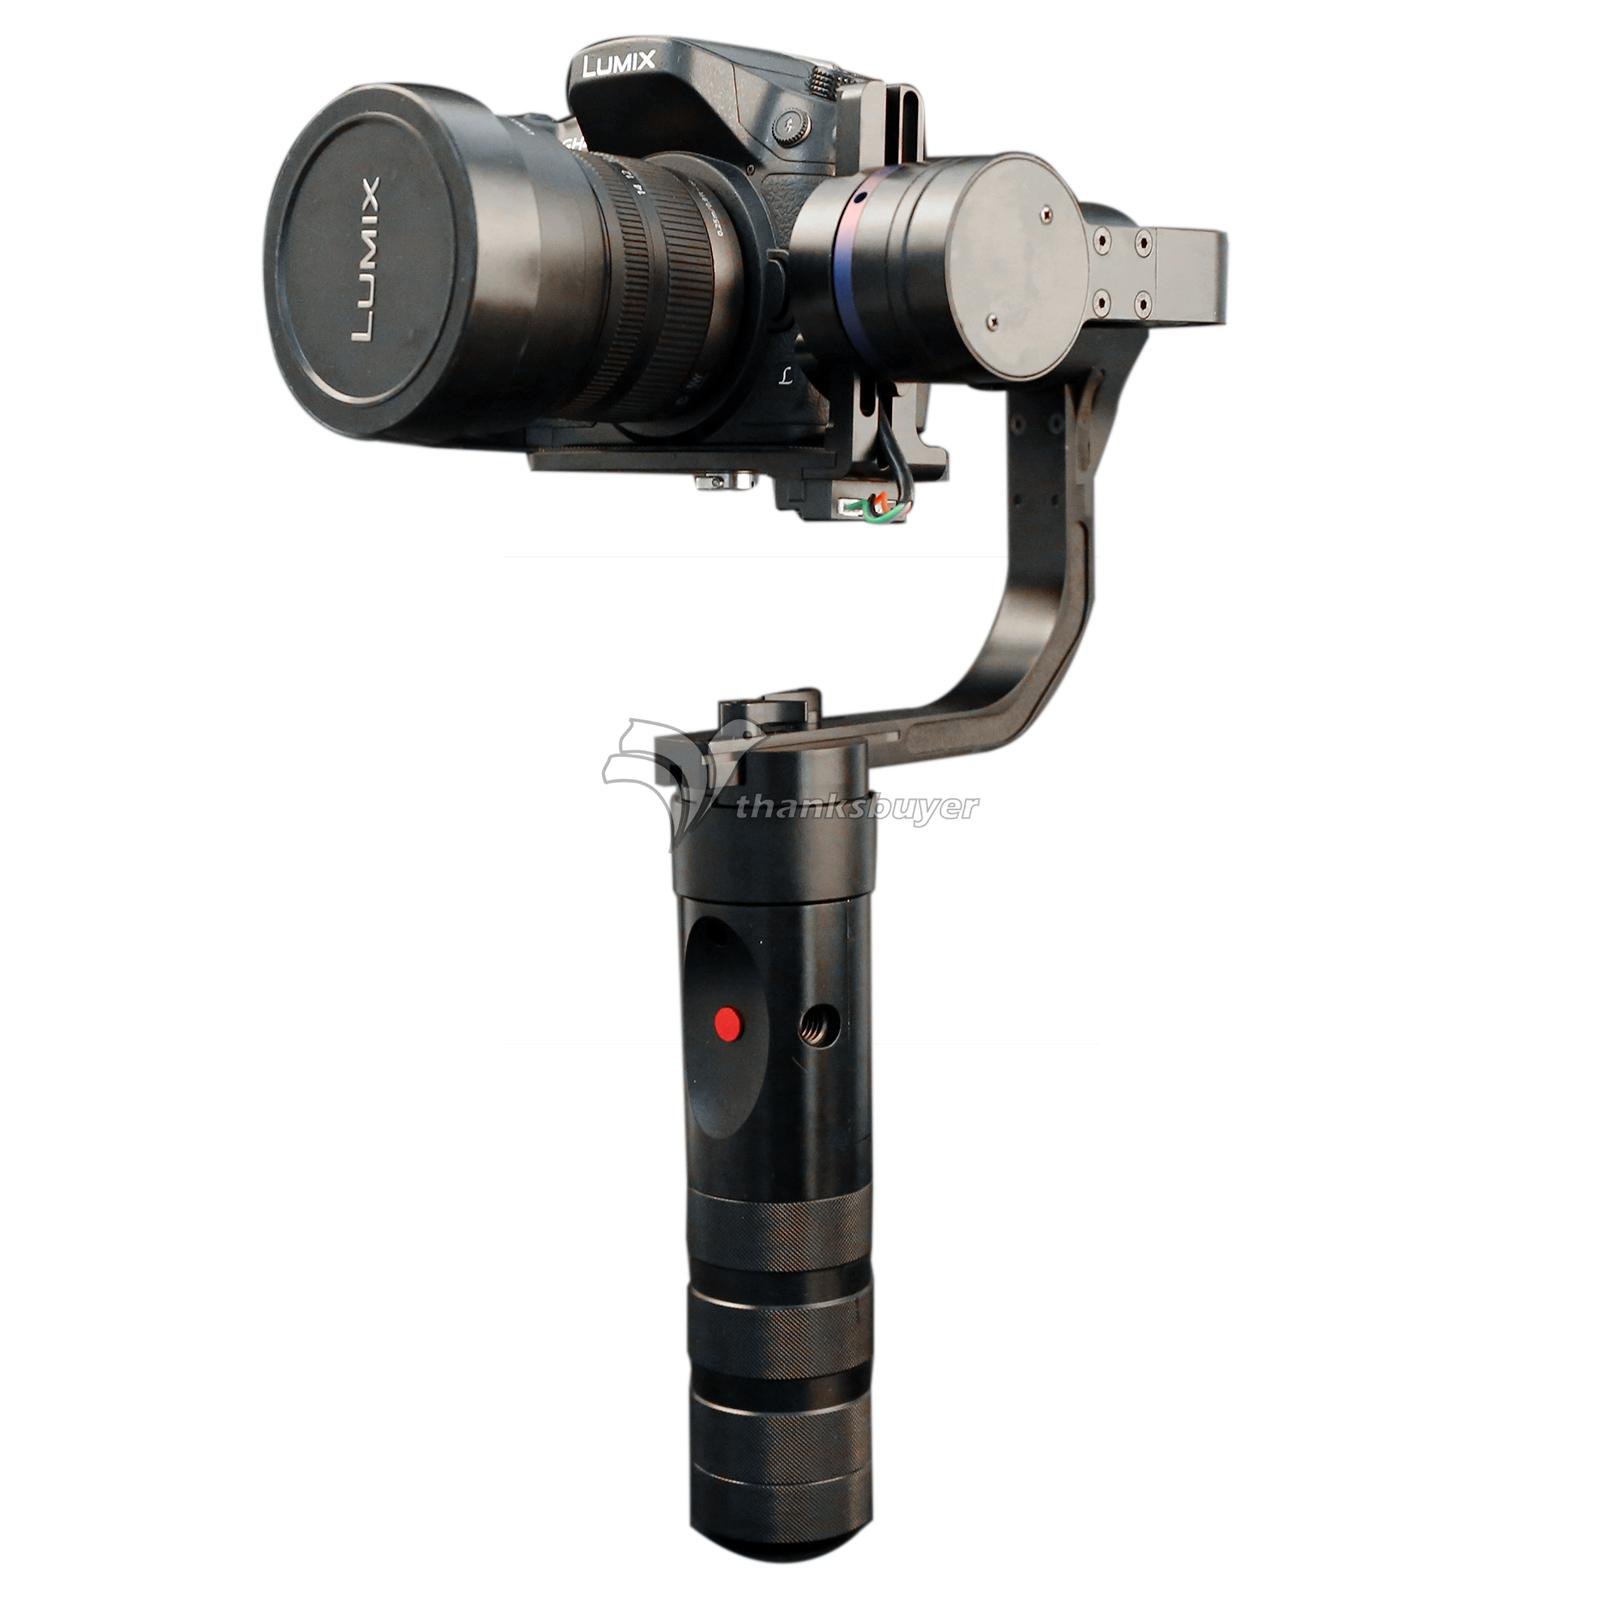 TopSky TS1 PK Nebula 4000 Handheld 3 Axis Gyroscope Stabilizer Brushless Gimbal for A7S GH4 Micro DSLR Camera BMPCC